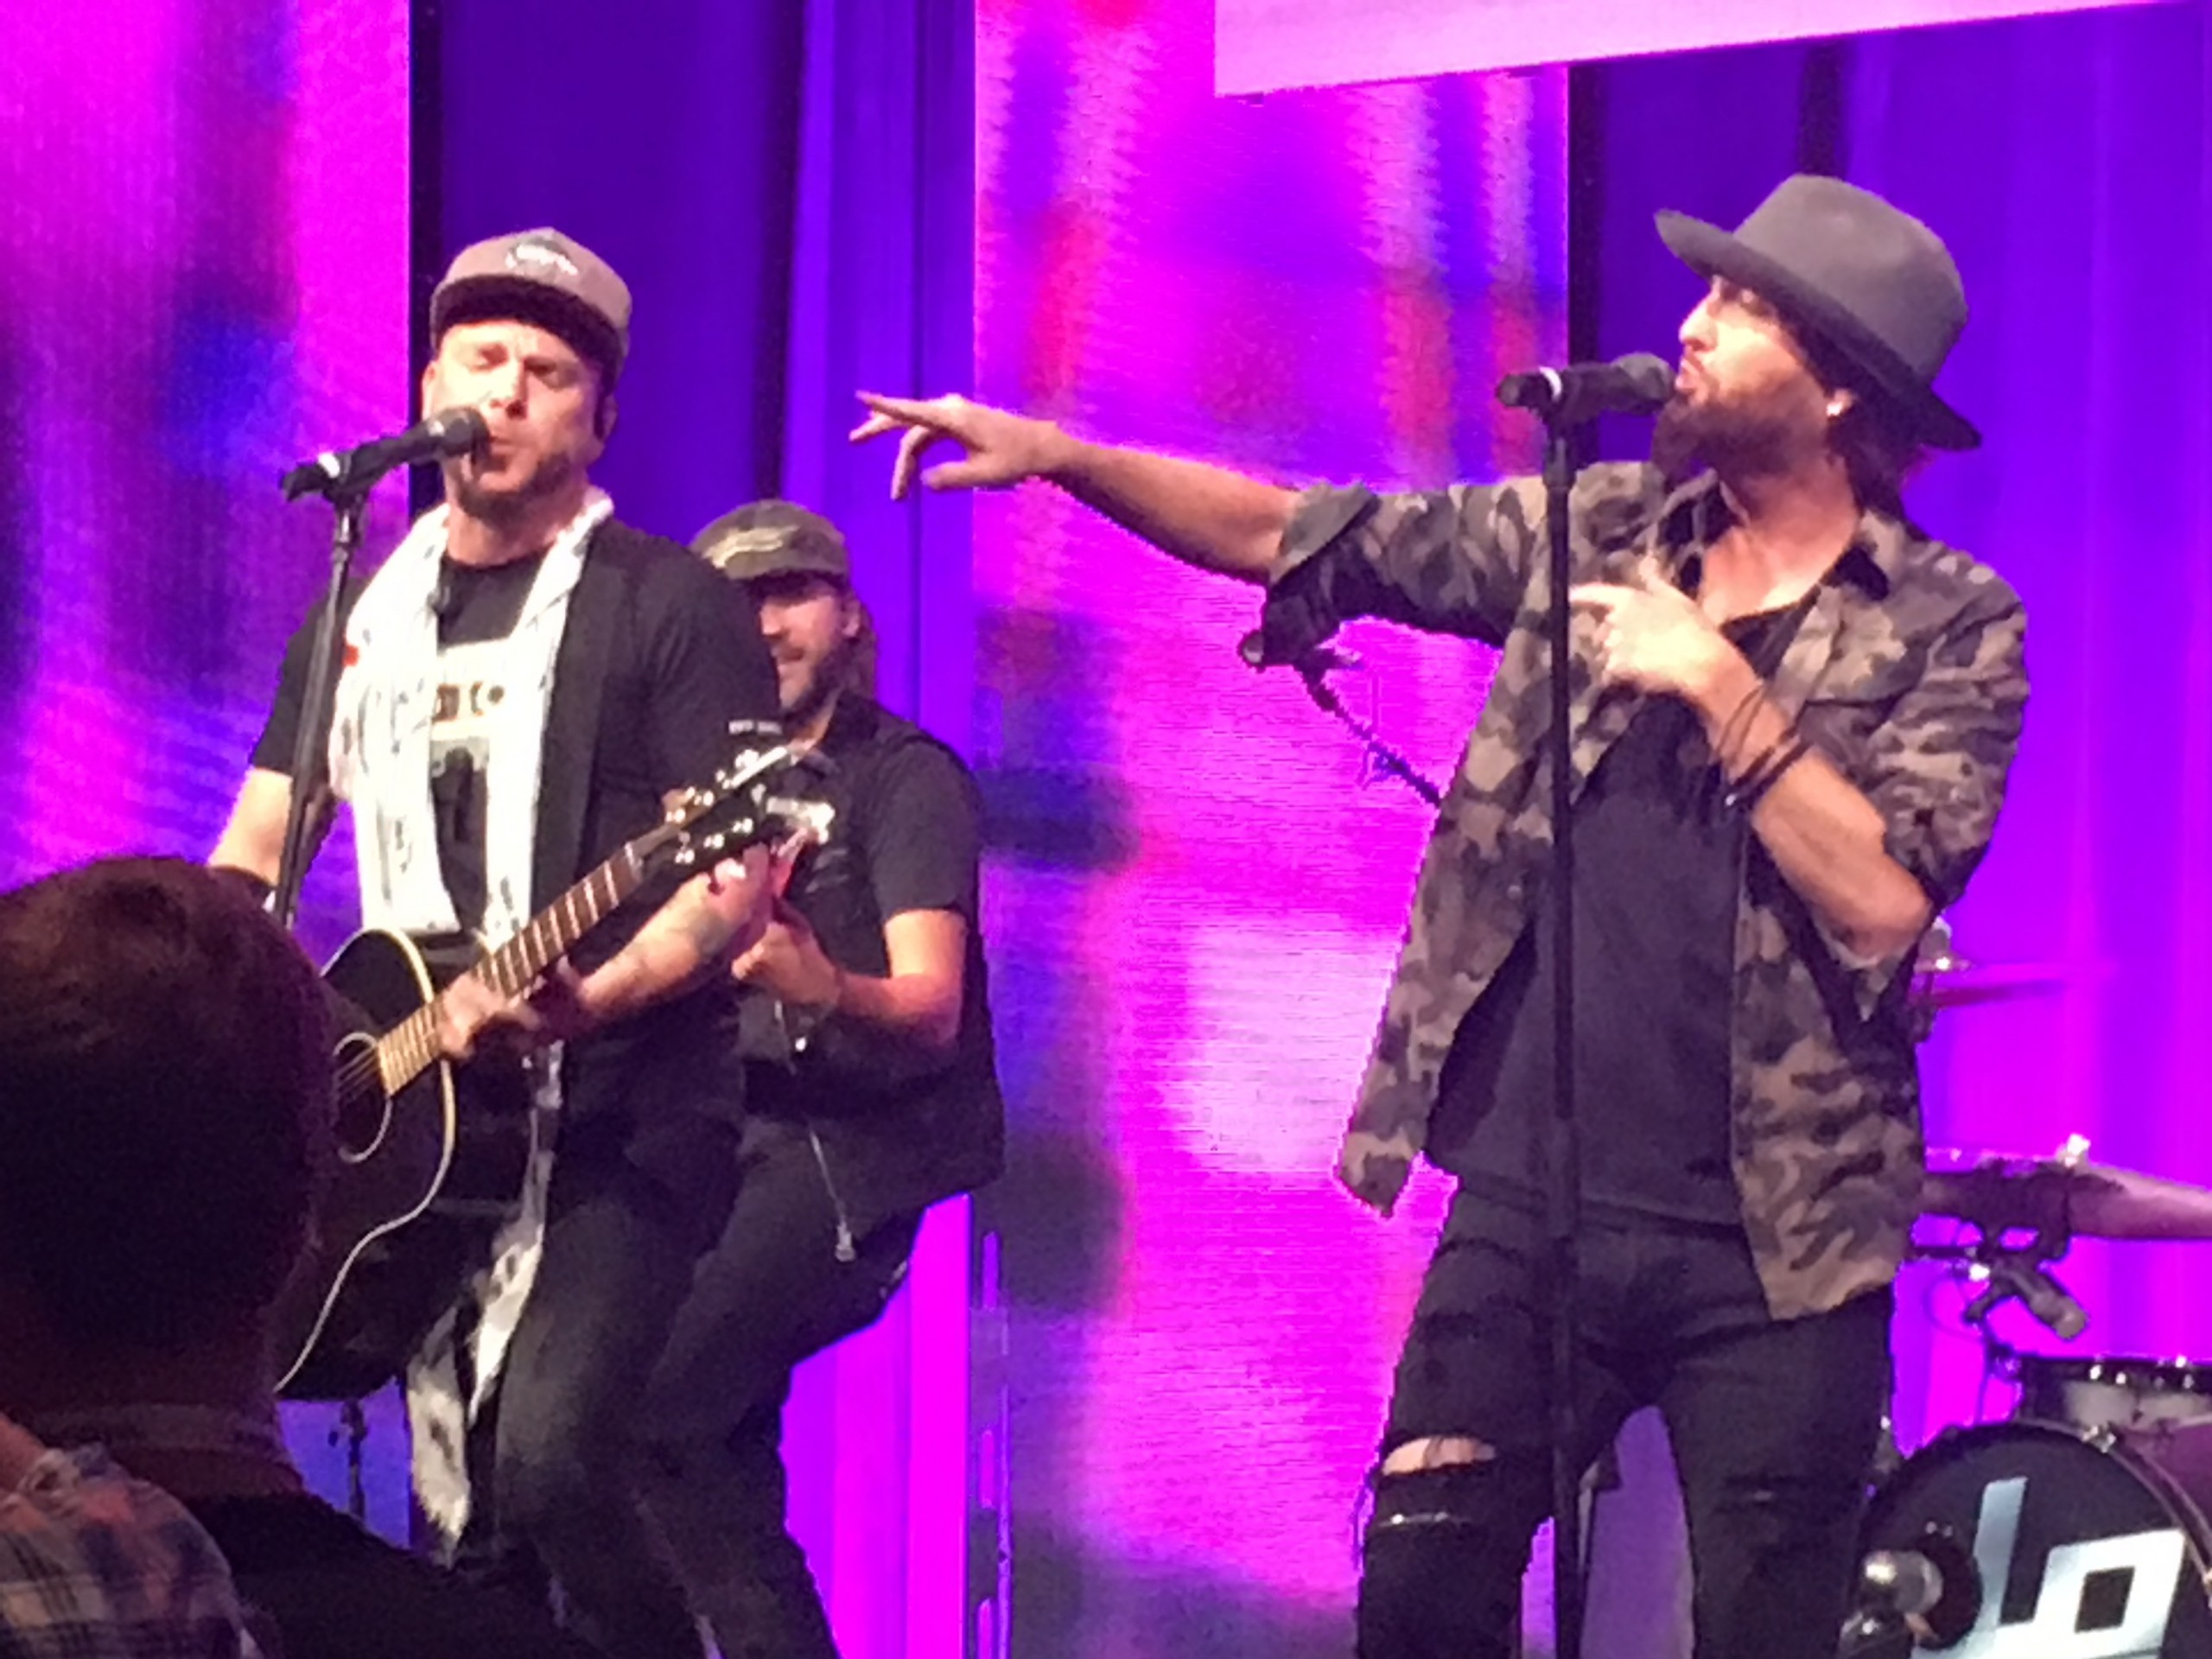 Look at how close I was to LOCASH